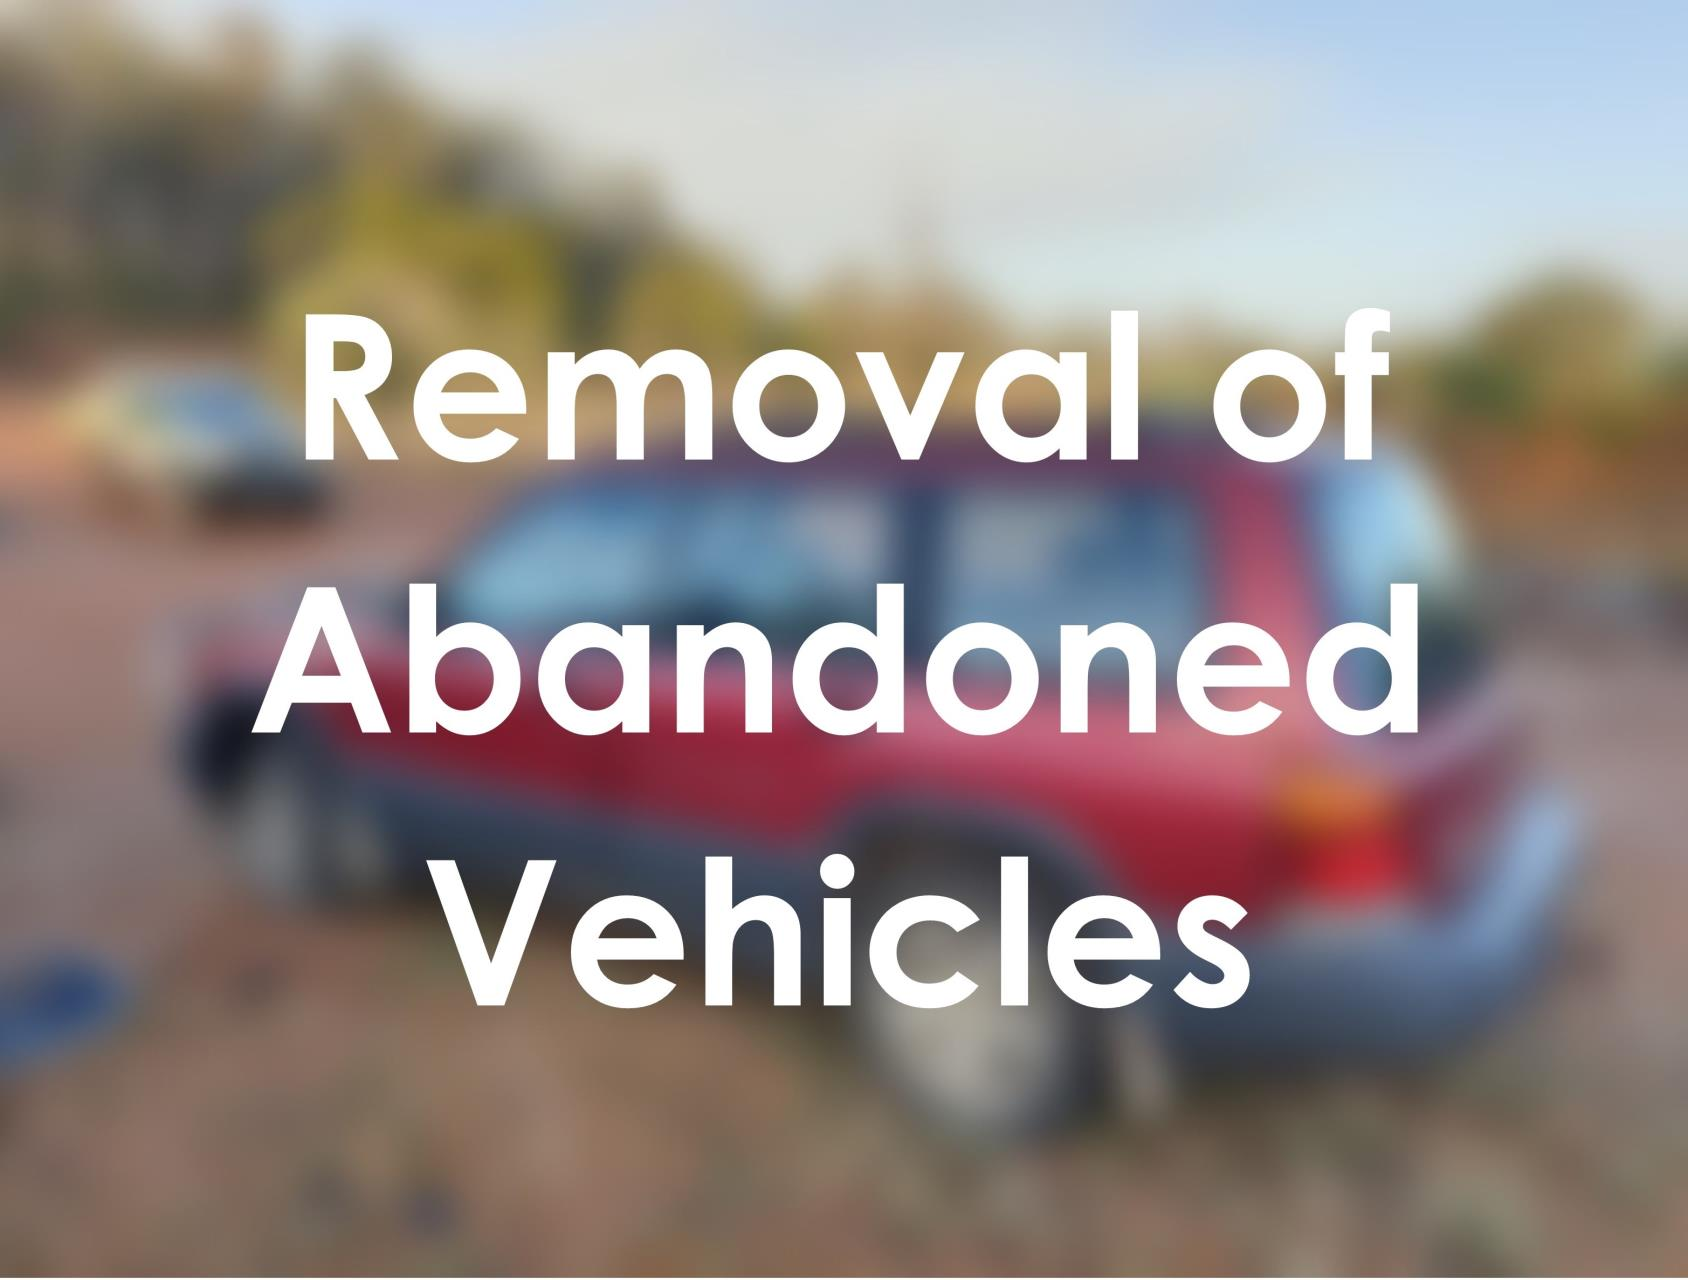 Removal of Abandoned Vehicles